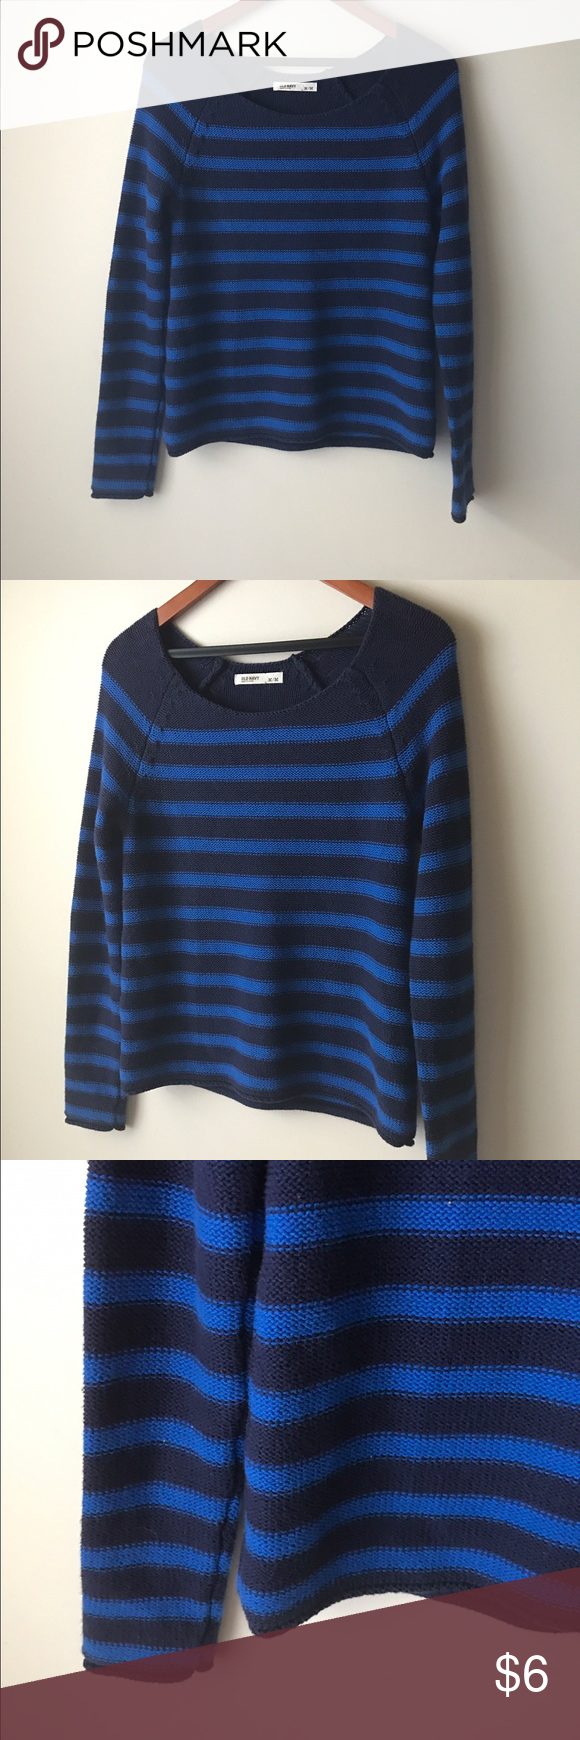 Old Navy blue striped knit sweater | Cobalt blue, Navy sweaters ...